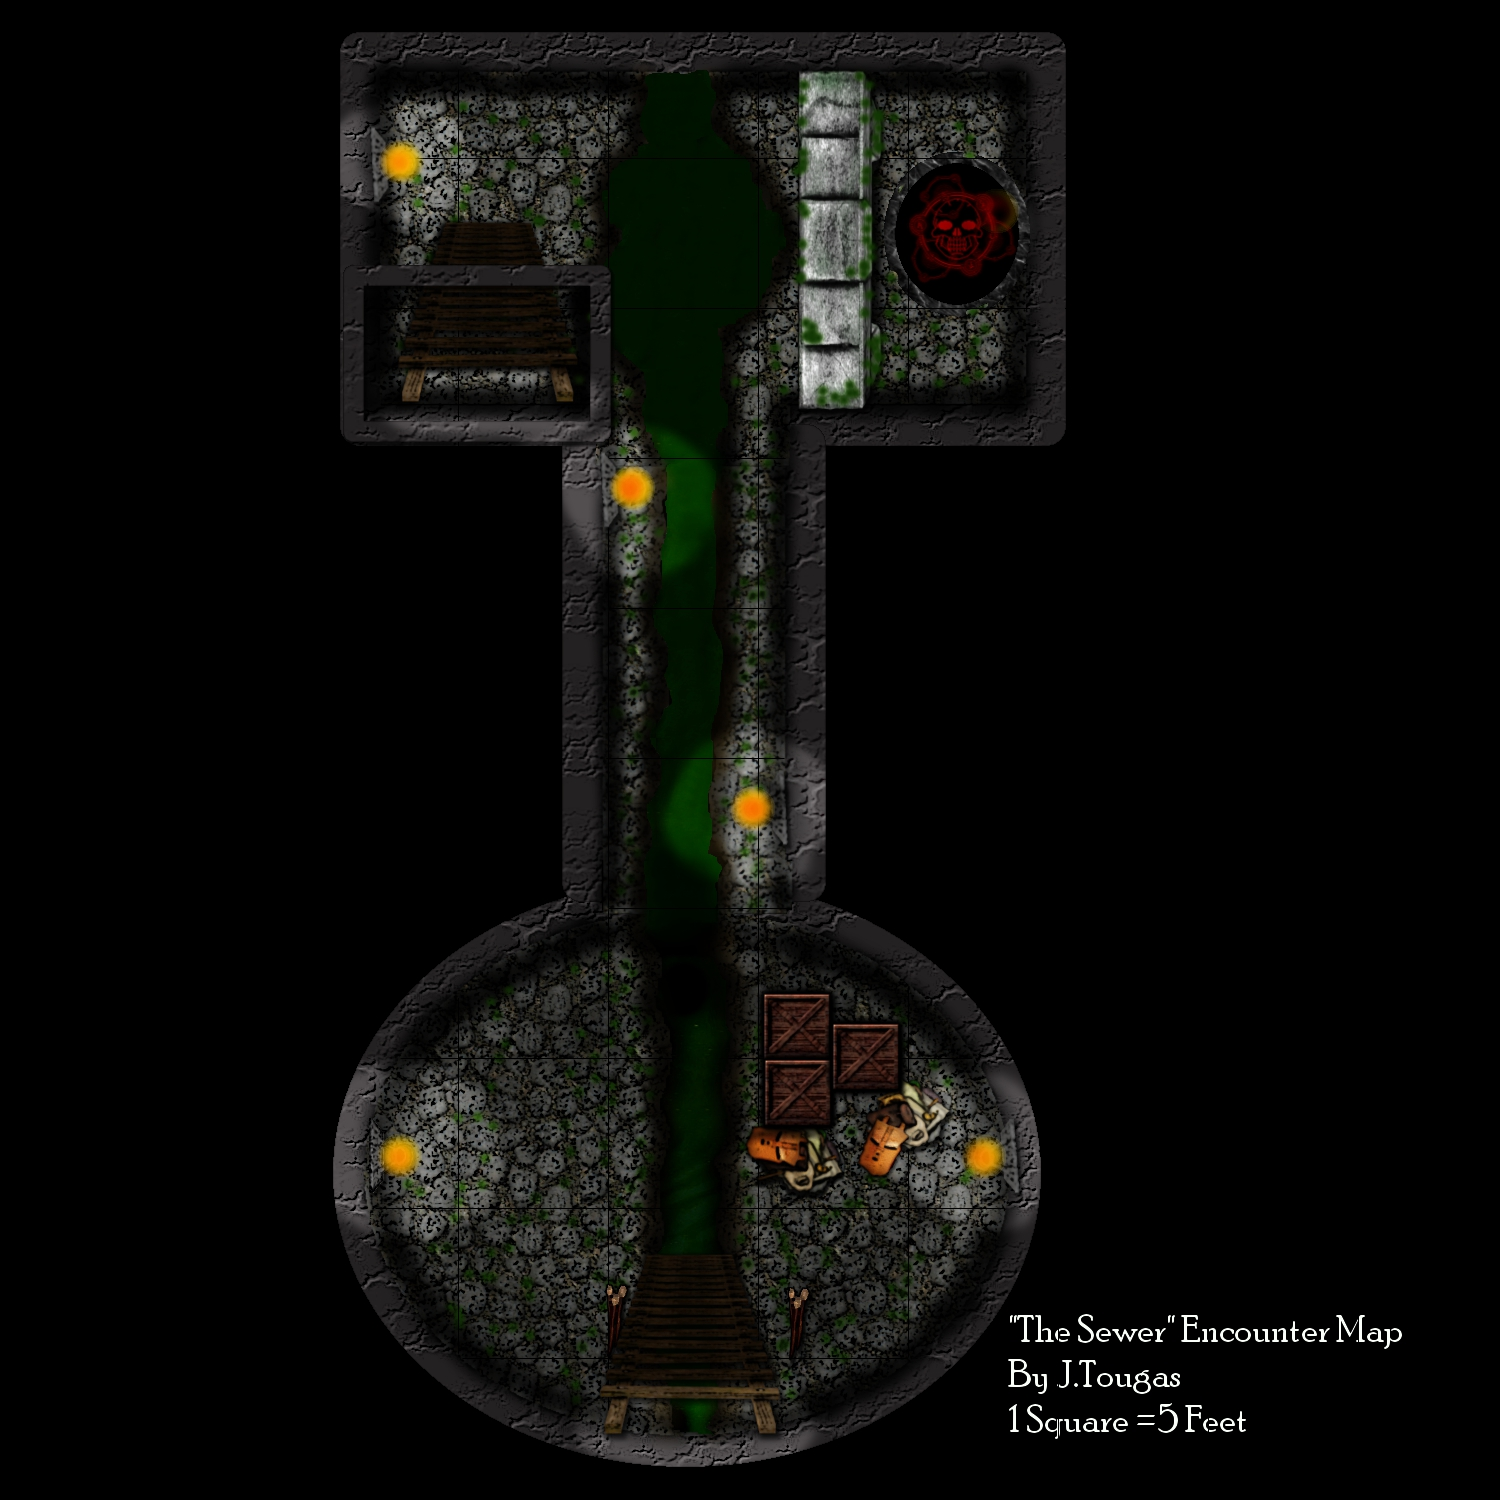 The Sewer Entrance